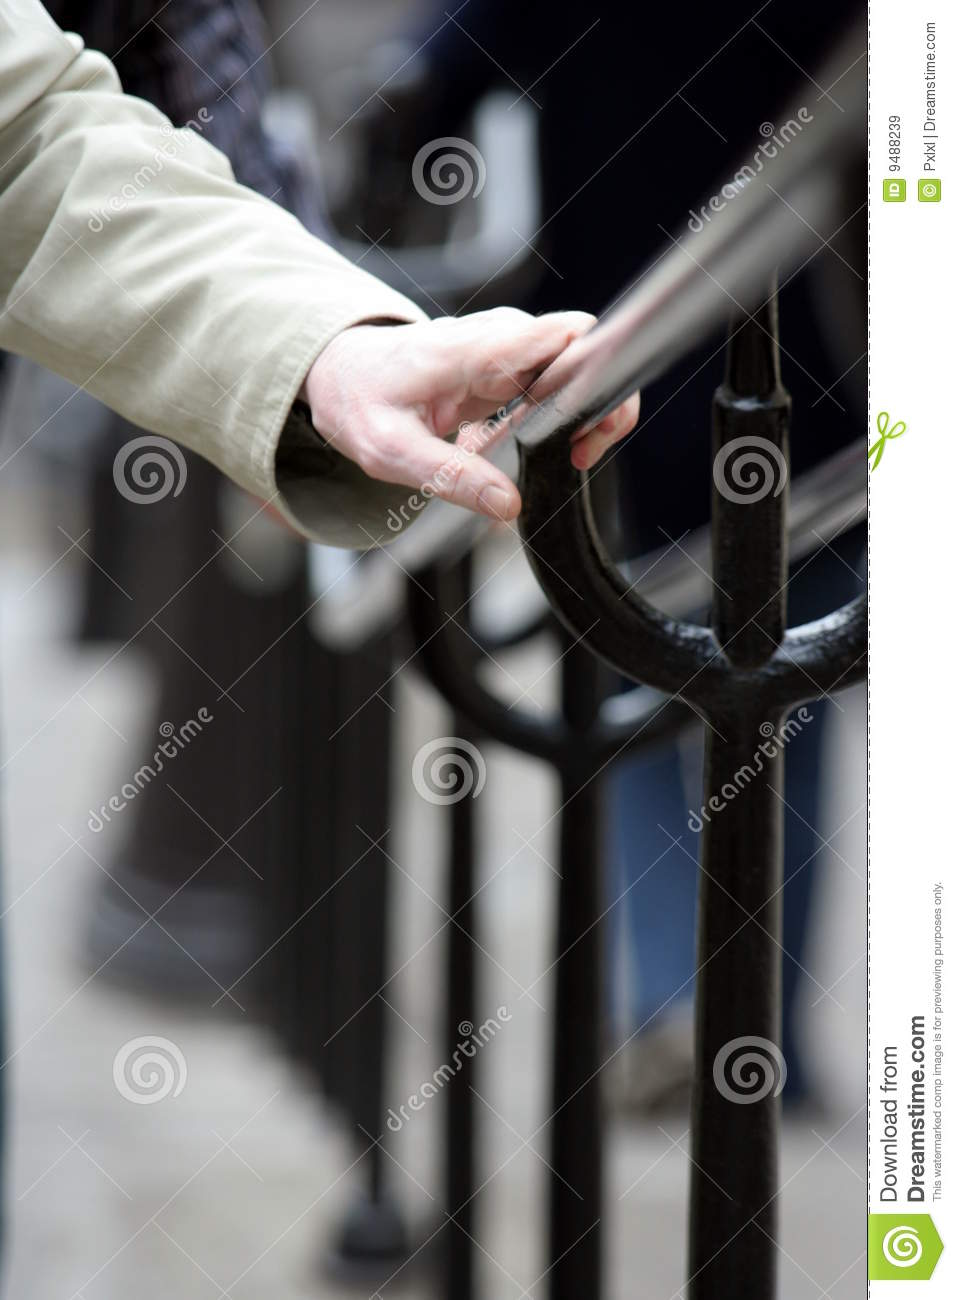 Hand on a handrail